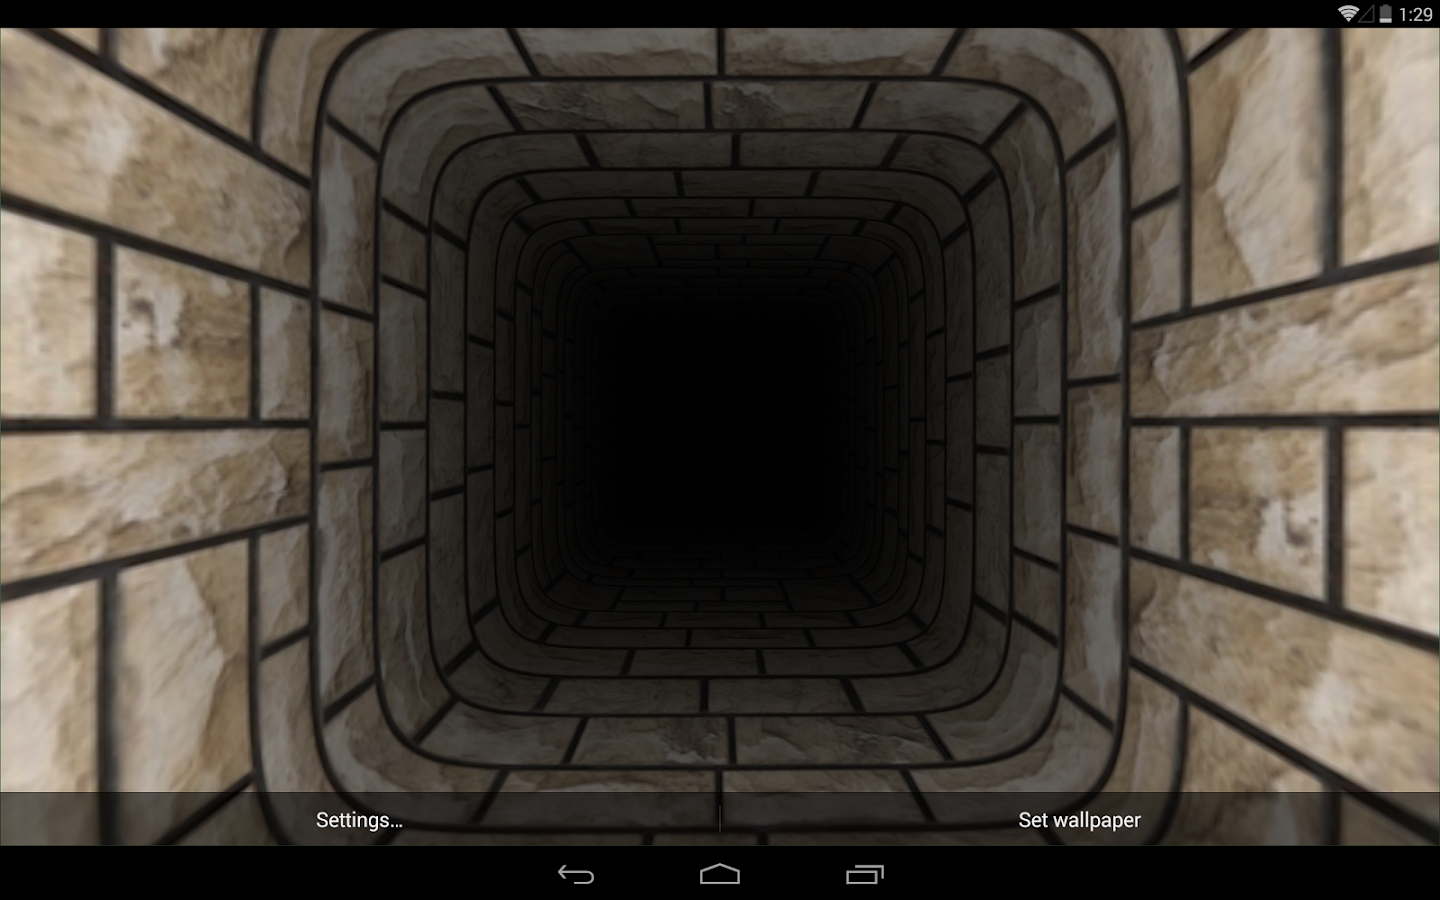 infinite tunnel 3d wallpaper - android apps on google play